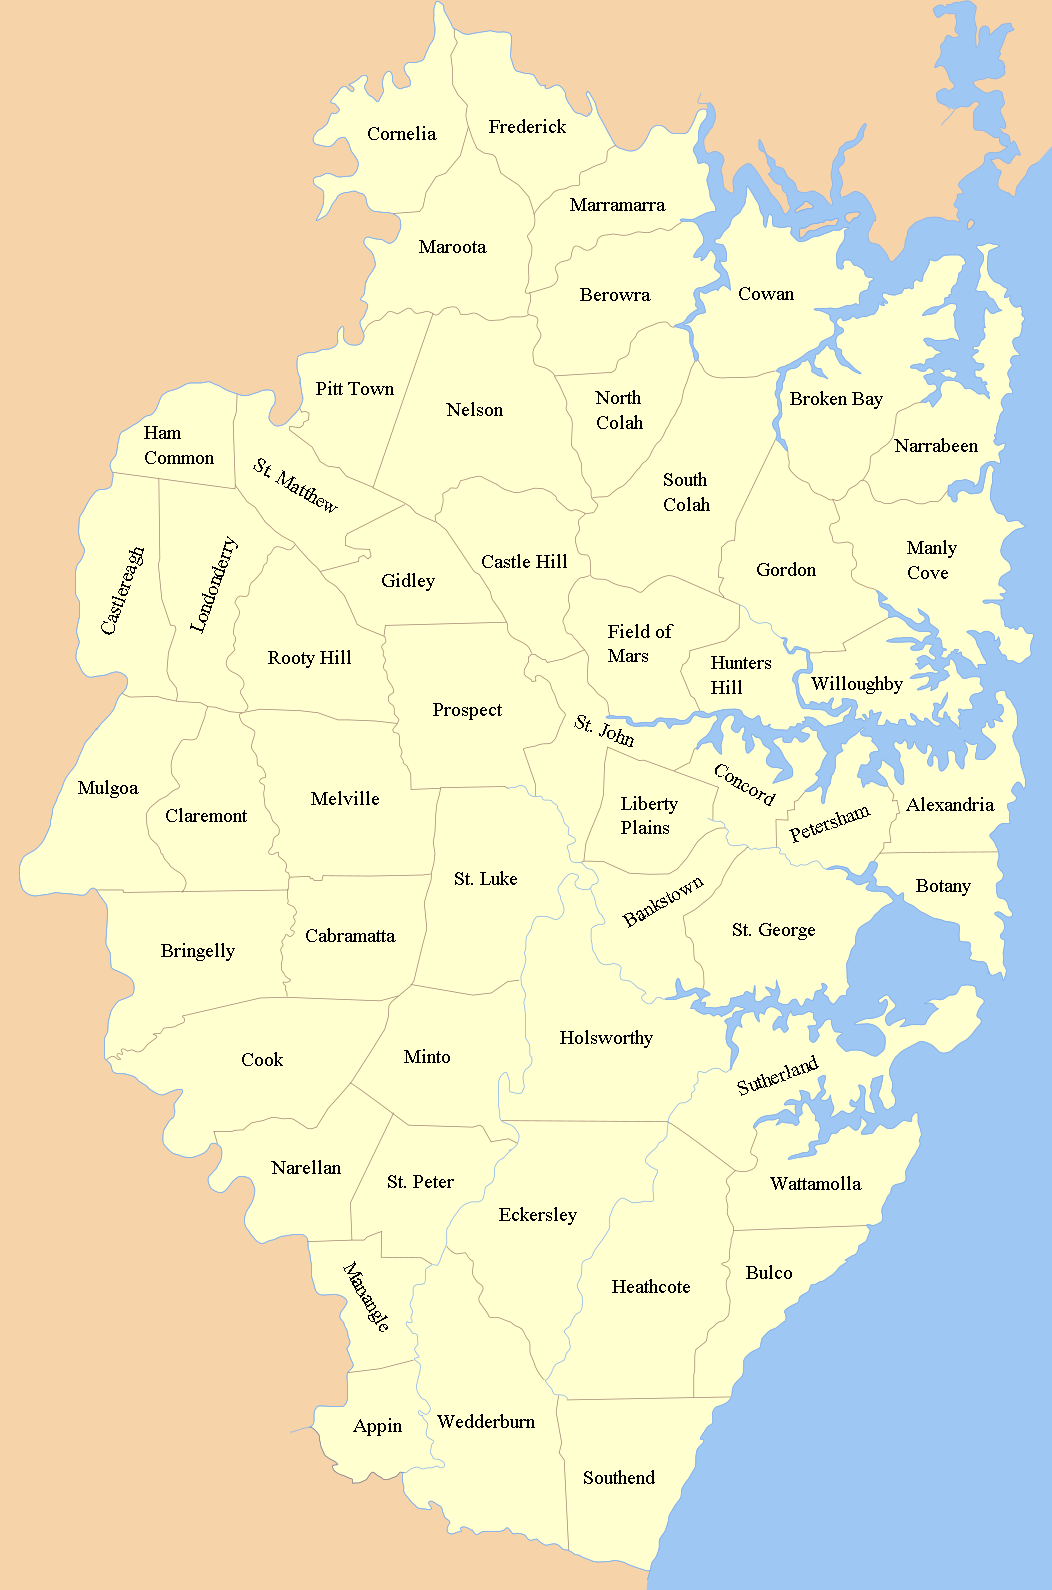 Counties Map of Sydney